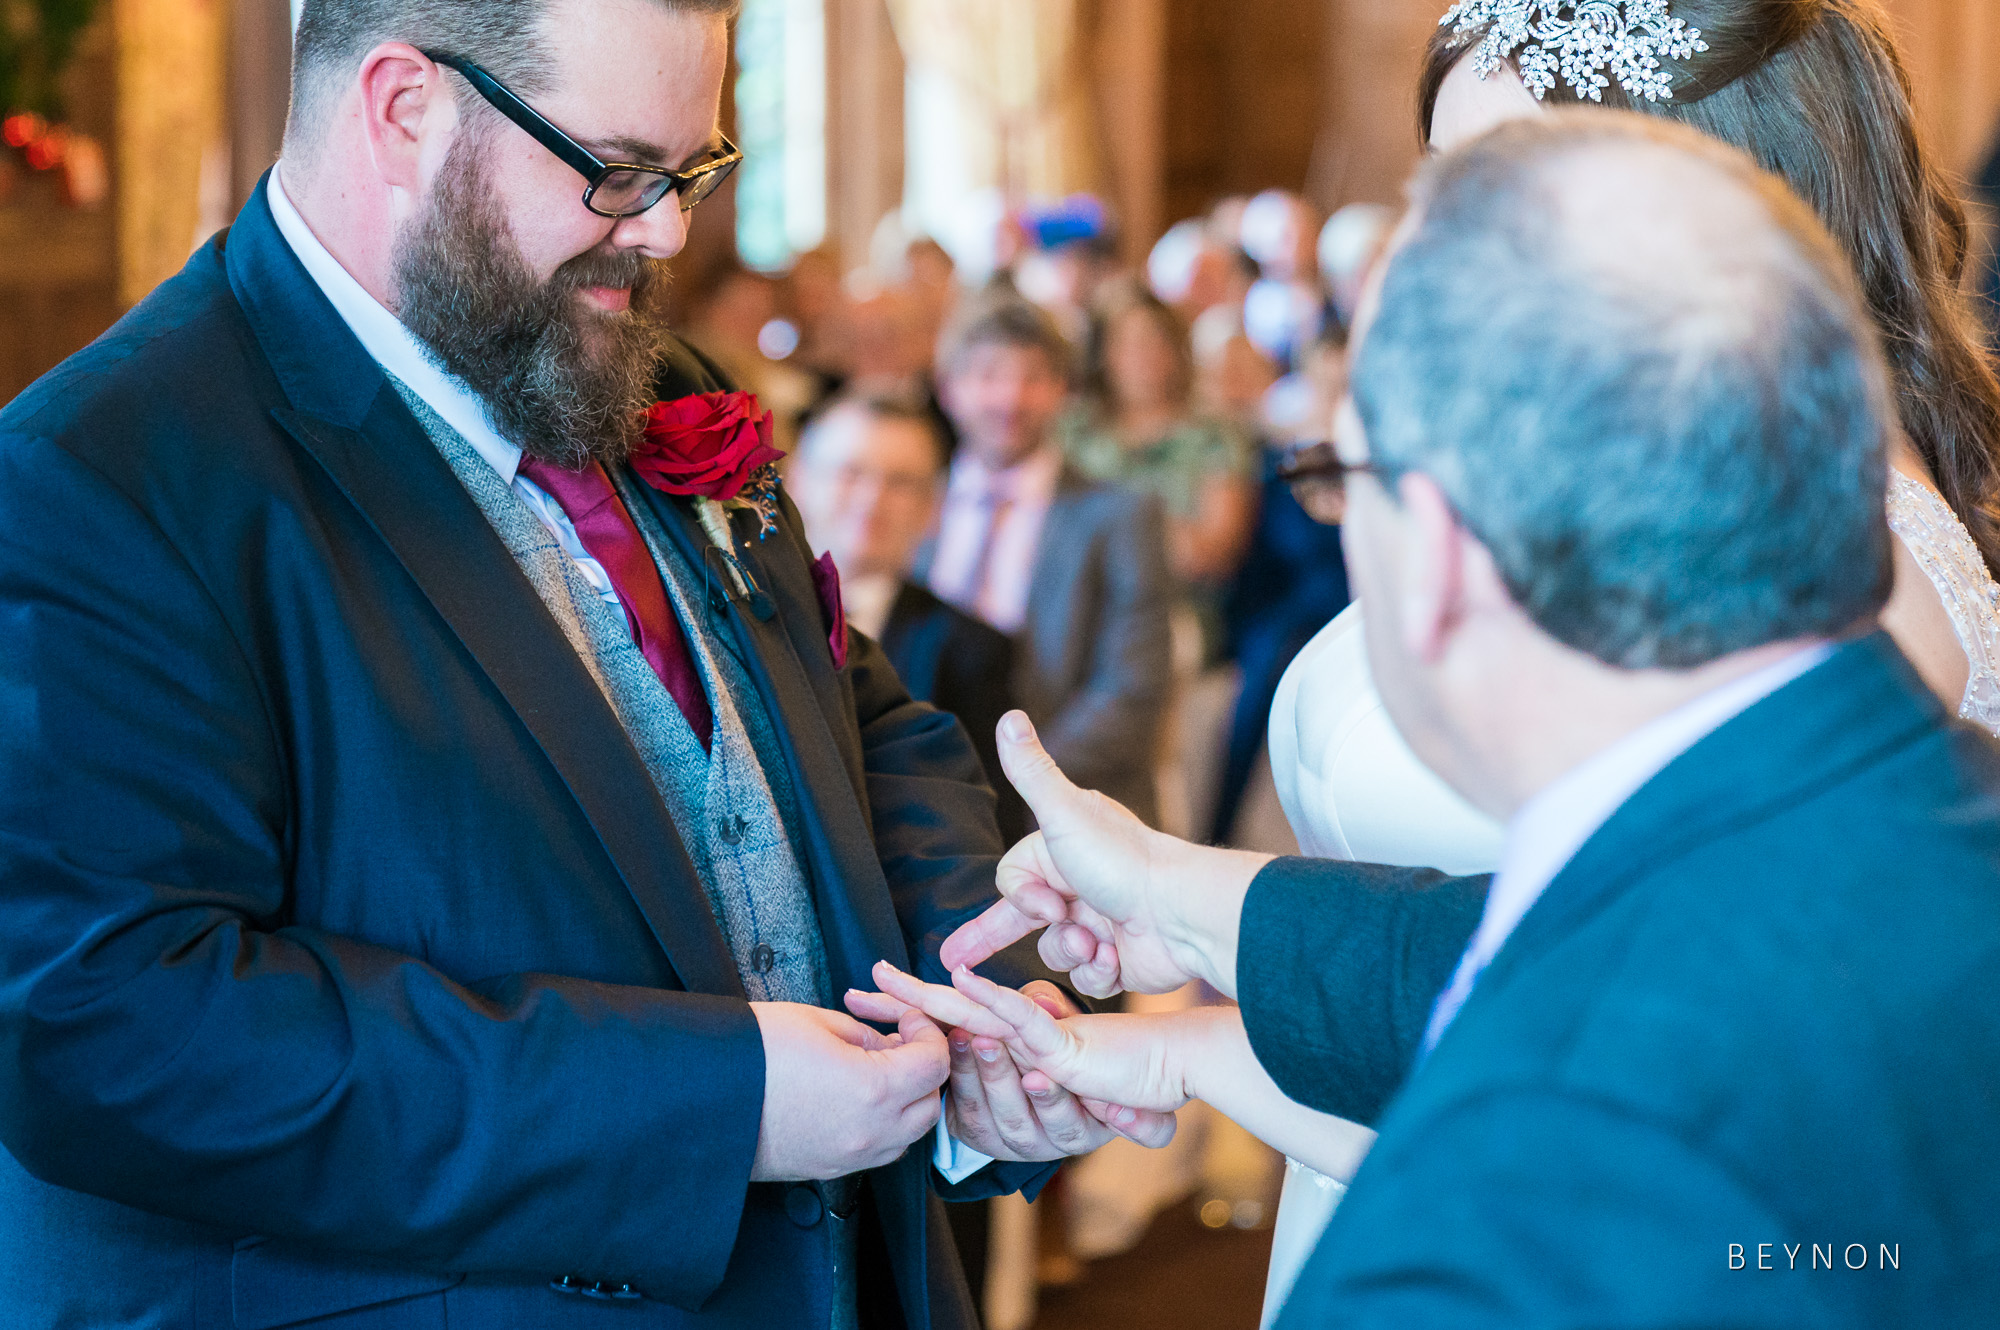 The celebrant points to the correct finger for the rings